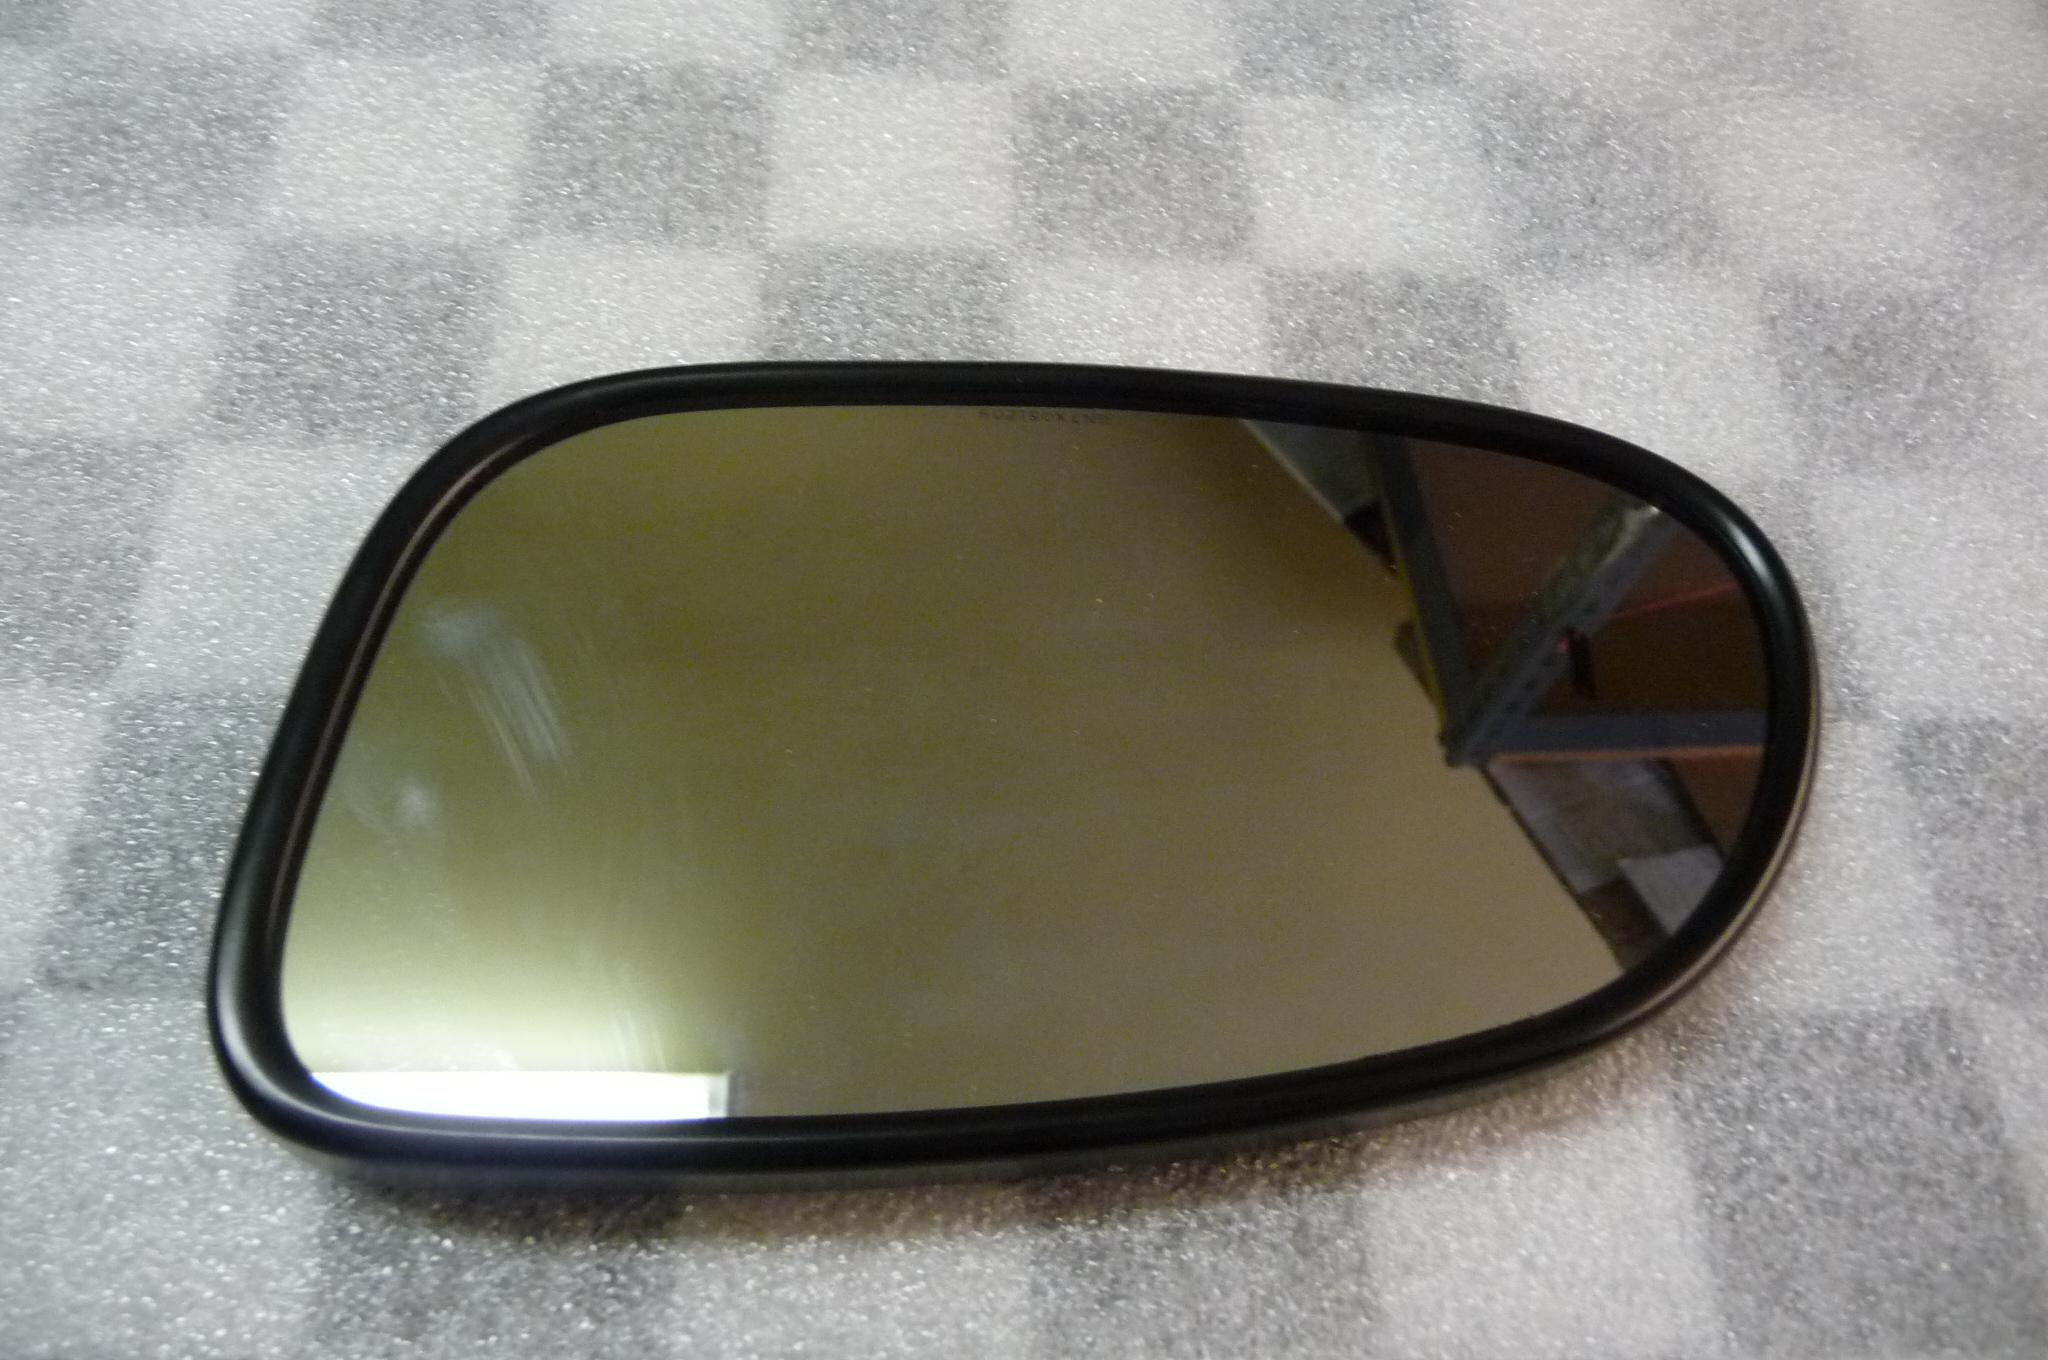 Mercedes Benz CLK SL Outside Left Rearview Mirror Glass ONLY A 2308100521 OEM OE